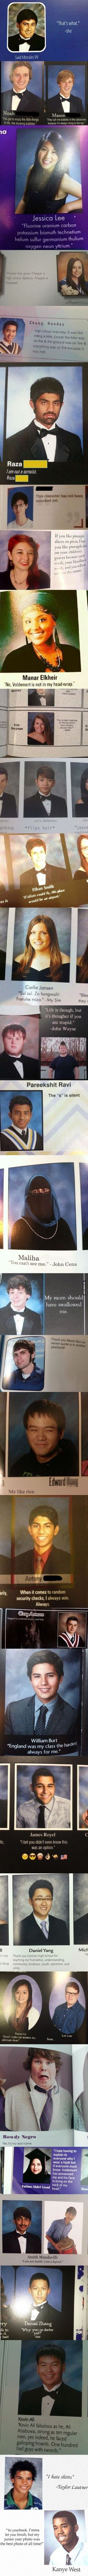 Brilliantly Funny Yearbooks